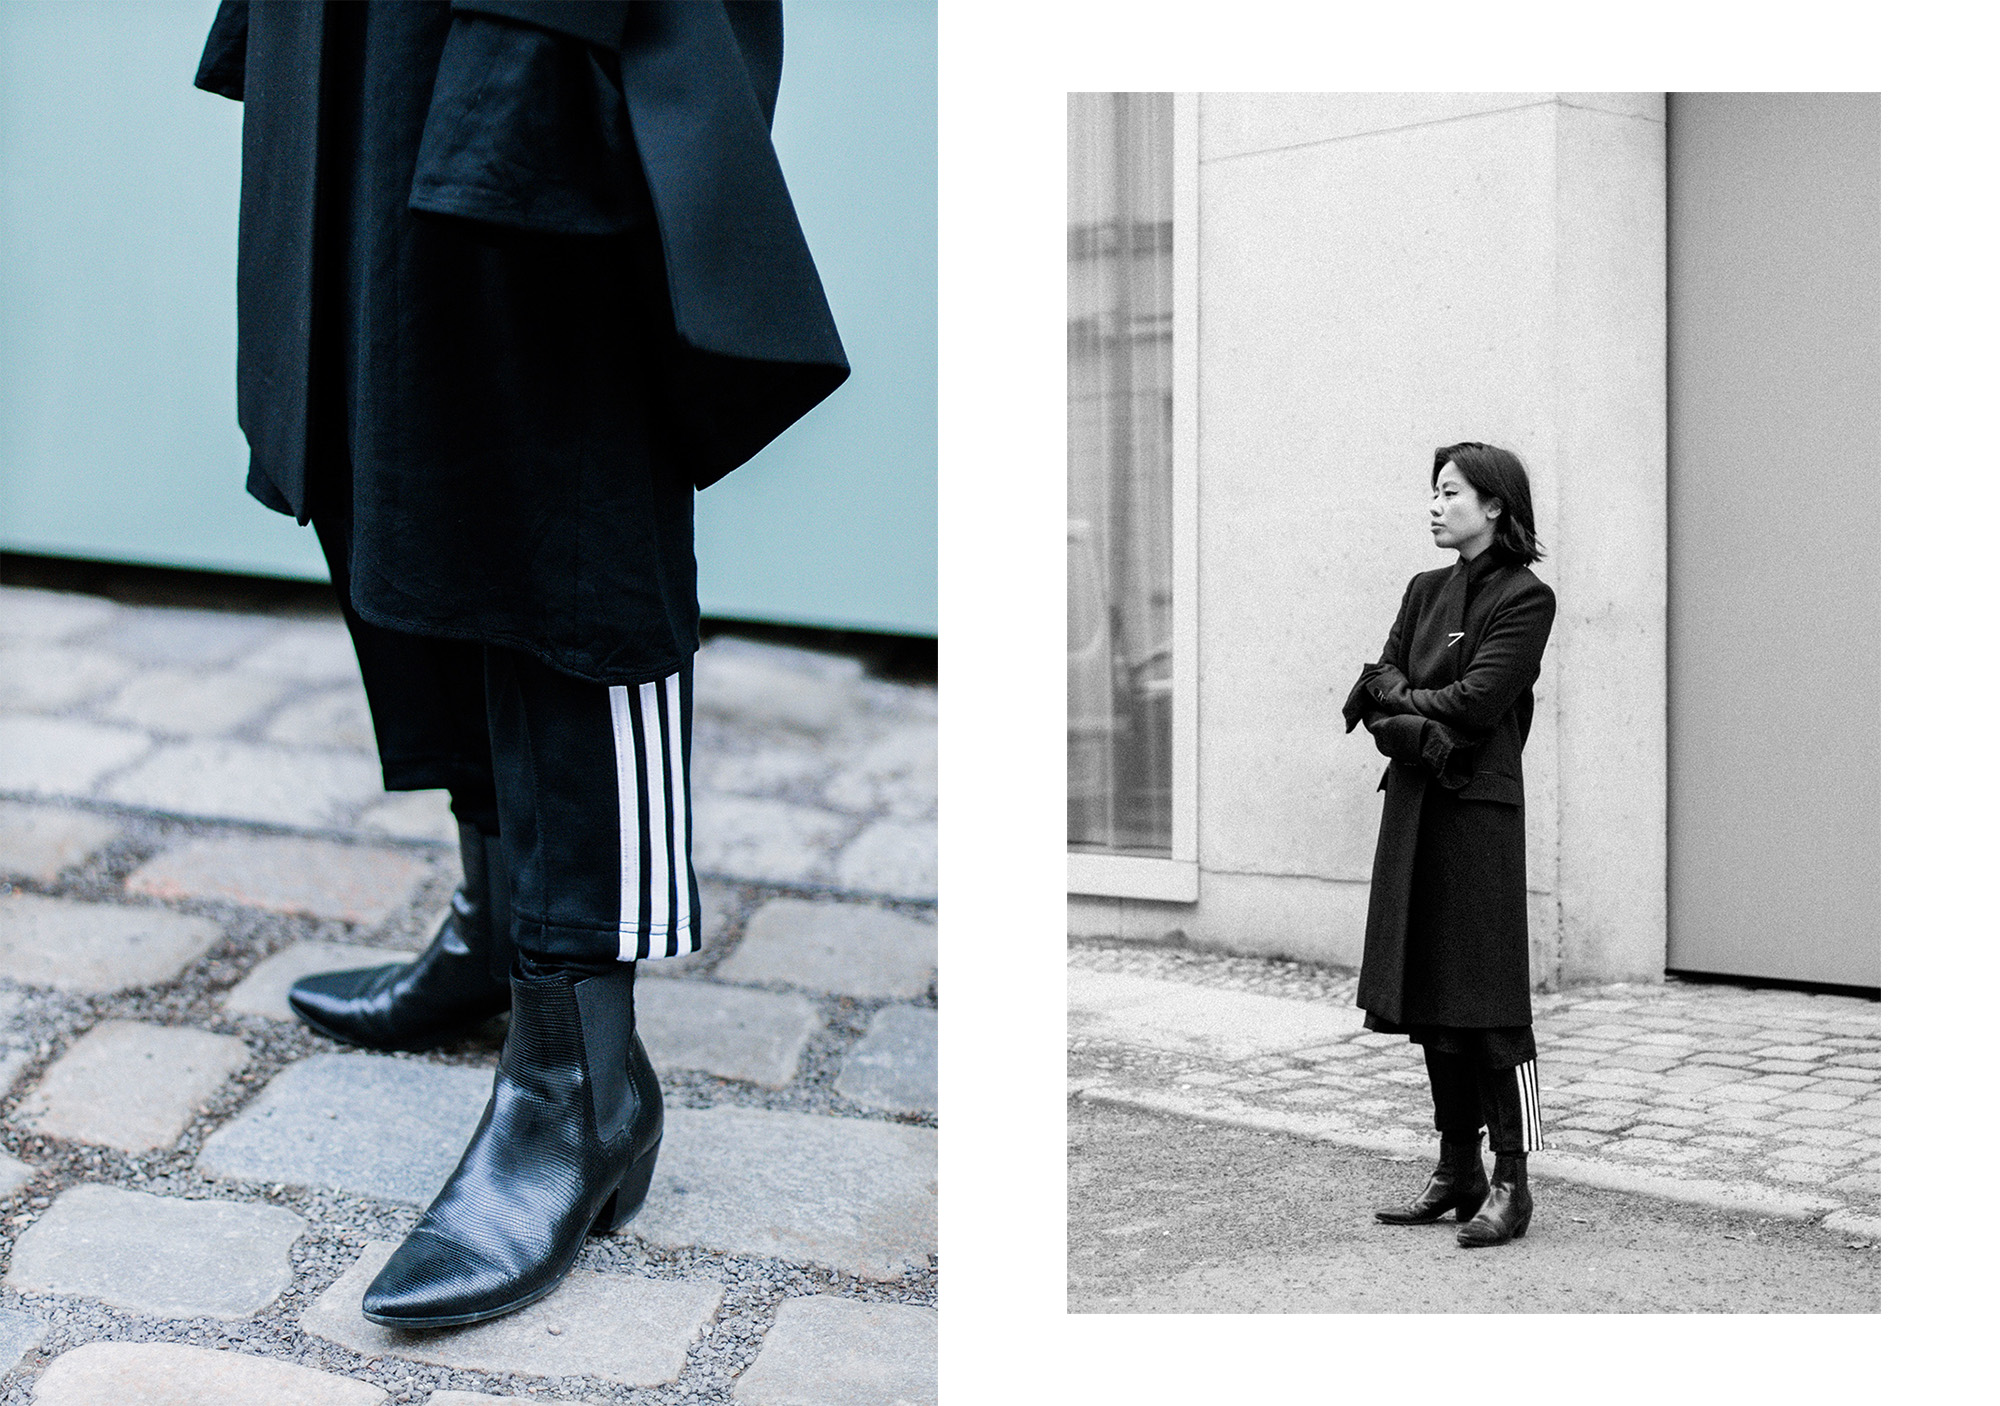 Athleisure Chic: Adidas Originals Trackpants, Pallas Endor Coat, Saint Laurent Boots - All Black Everything by Alice M. Huynh / IheartAlice.com